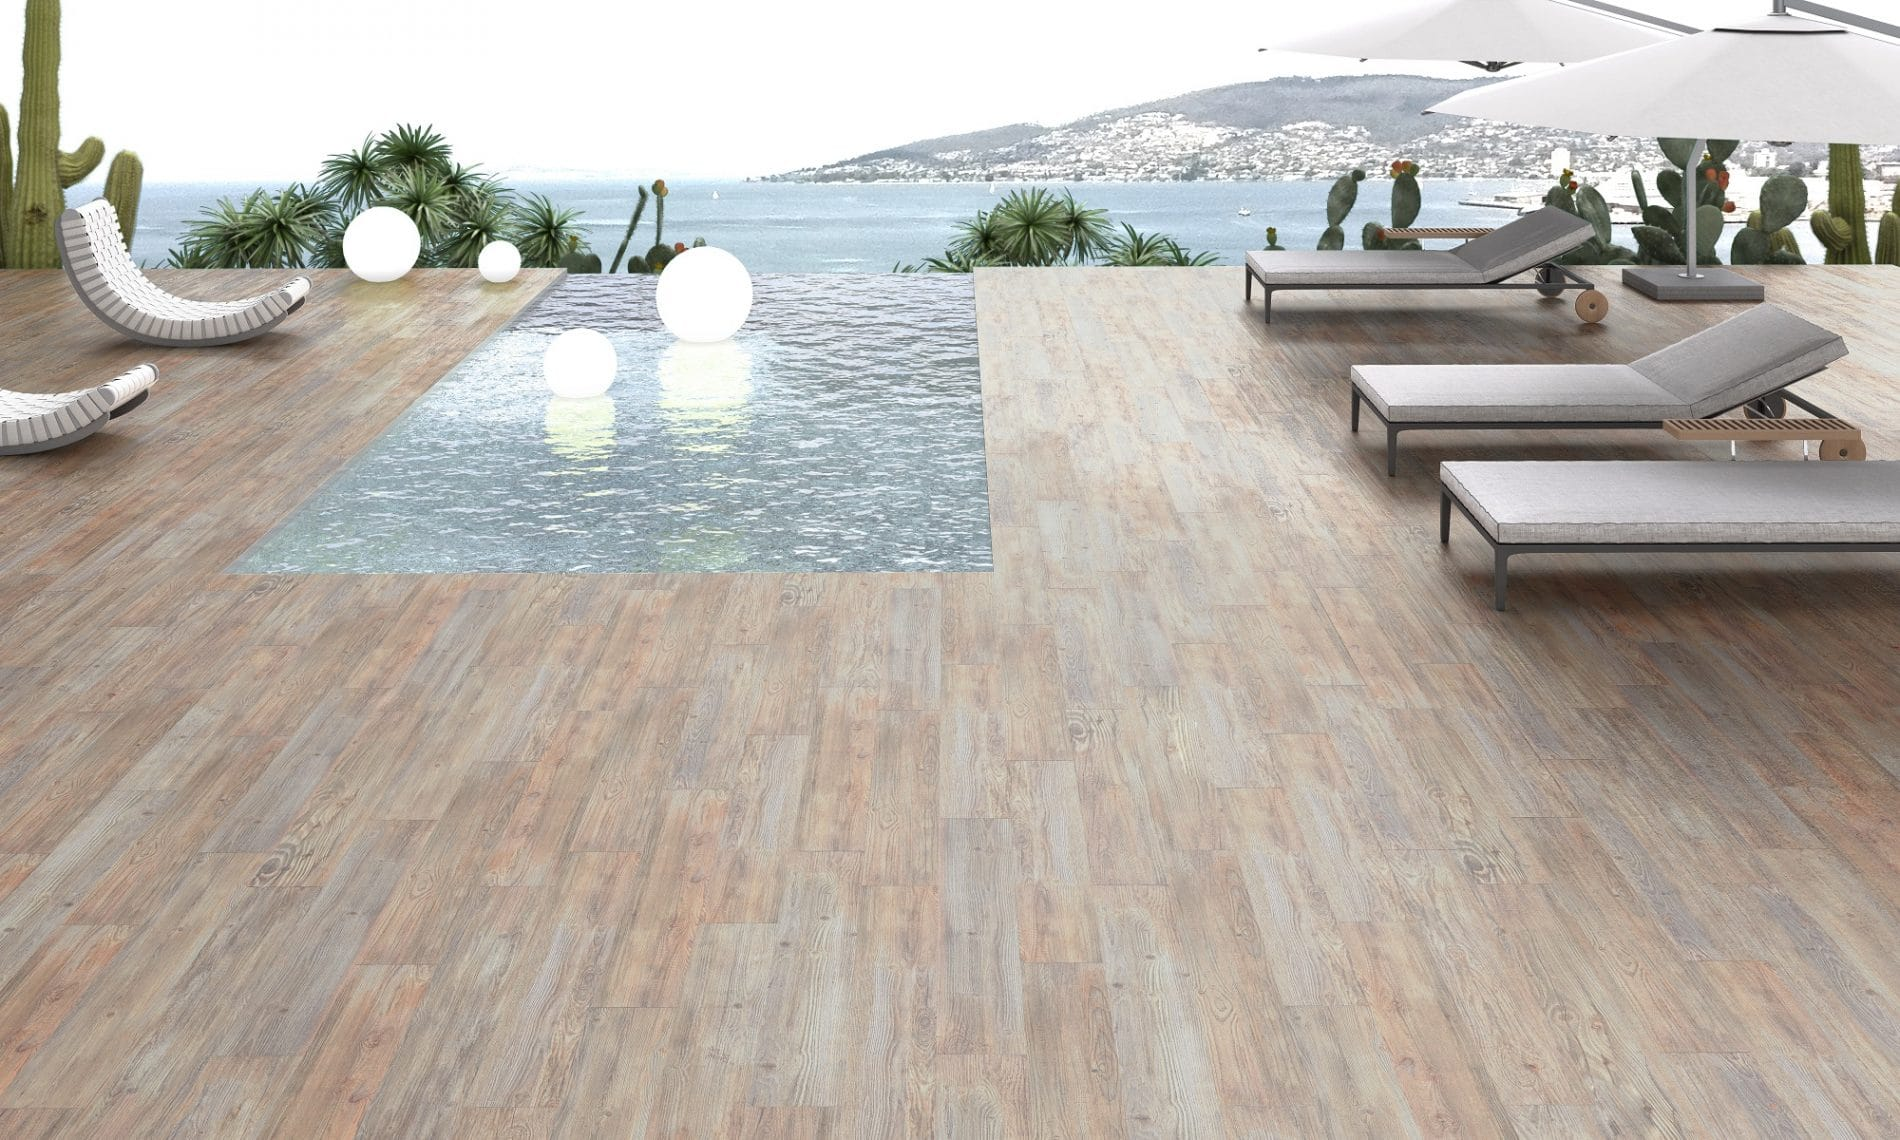 Ext rieur terrasse piscine balcon david carrelage for Carrelage terrasse piscine